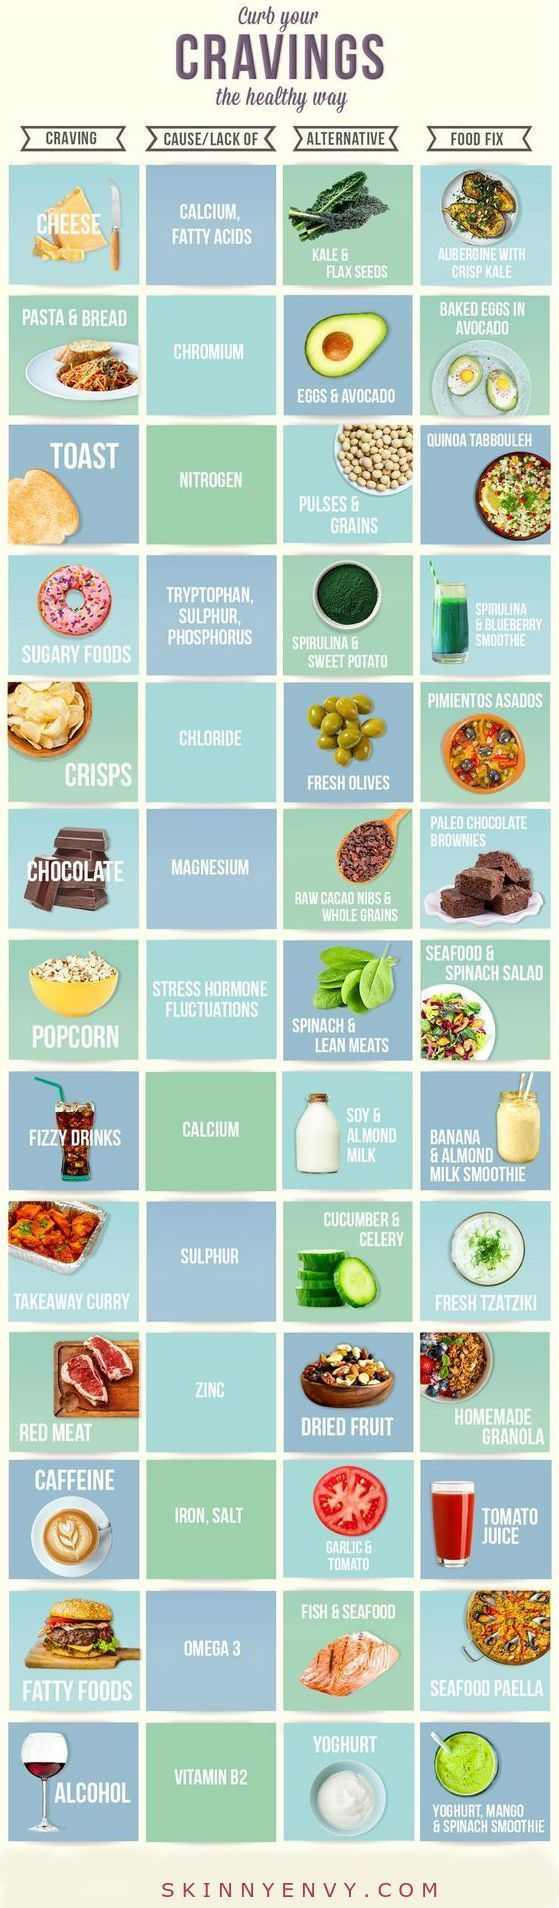 3567 best Tasty recipes images on Pinterest   Cooking food ...